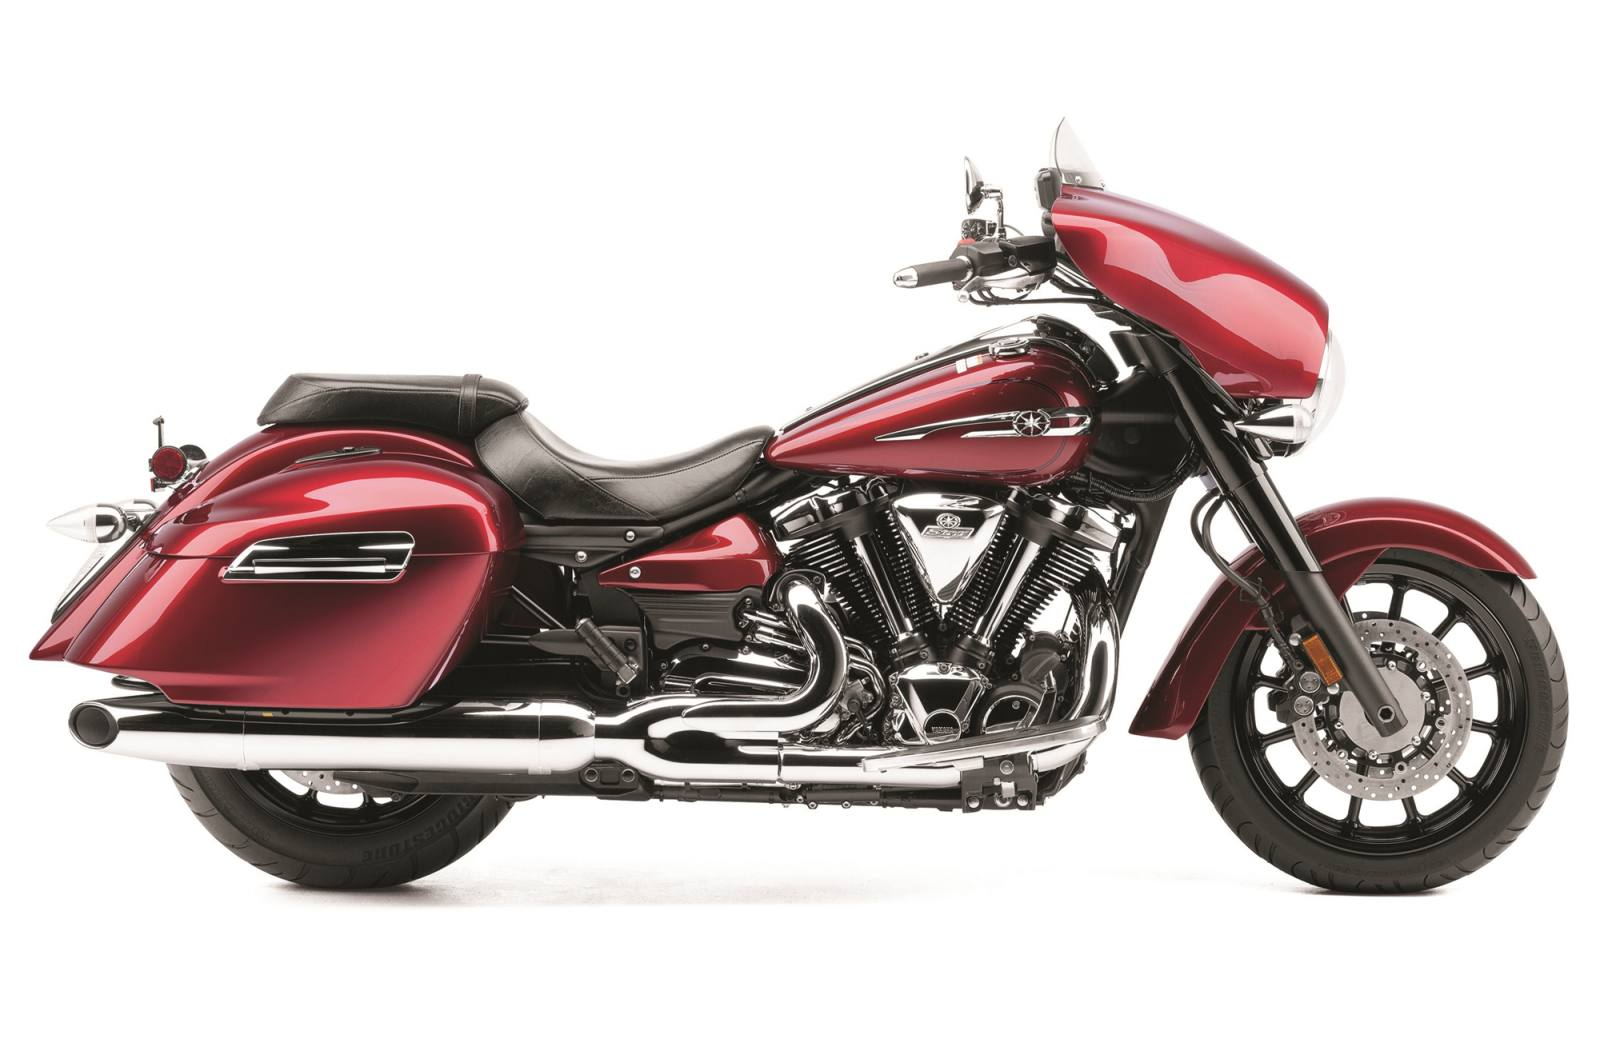 2014 Yamaha Stratoliner Deluxe For Sale In West Bloomfield Ny Motorcycle Wiring Products Stock Image Crimson Red